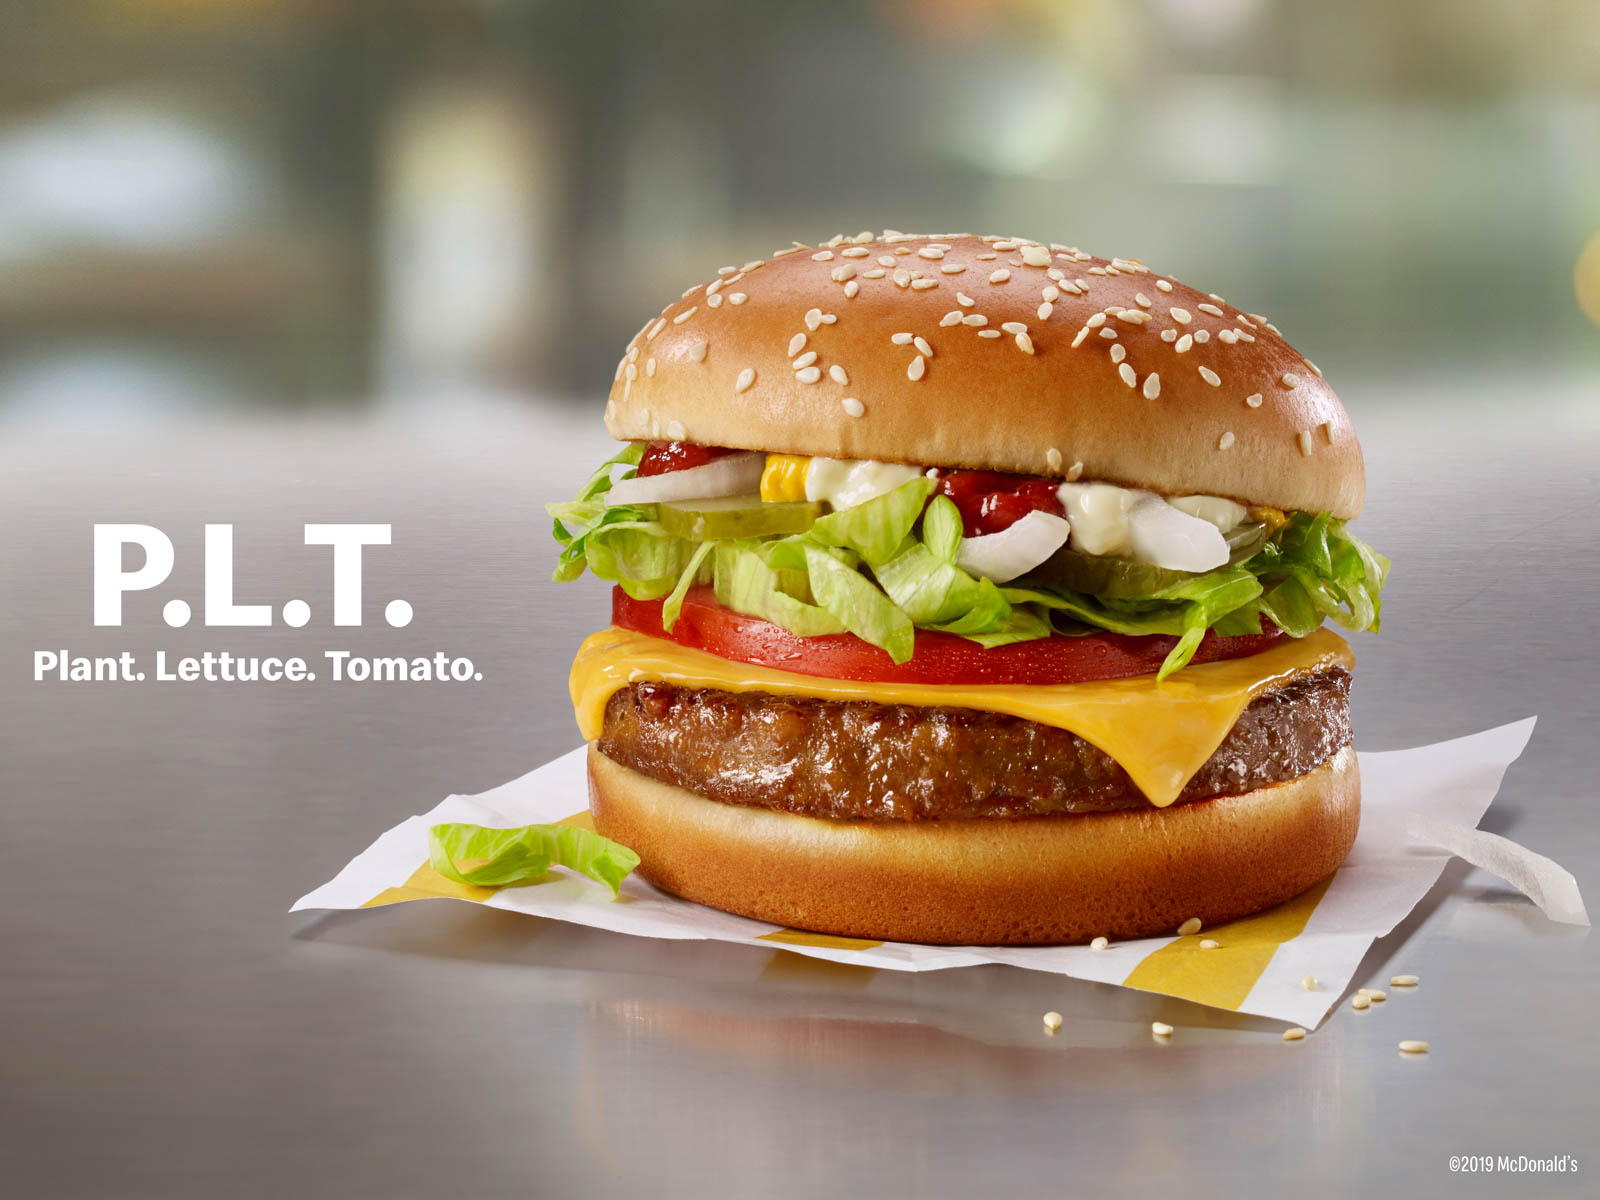 McDonald's Introduces Their Own Plant-Based Burger